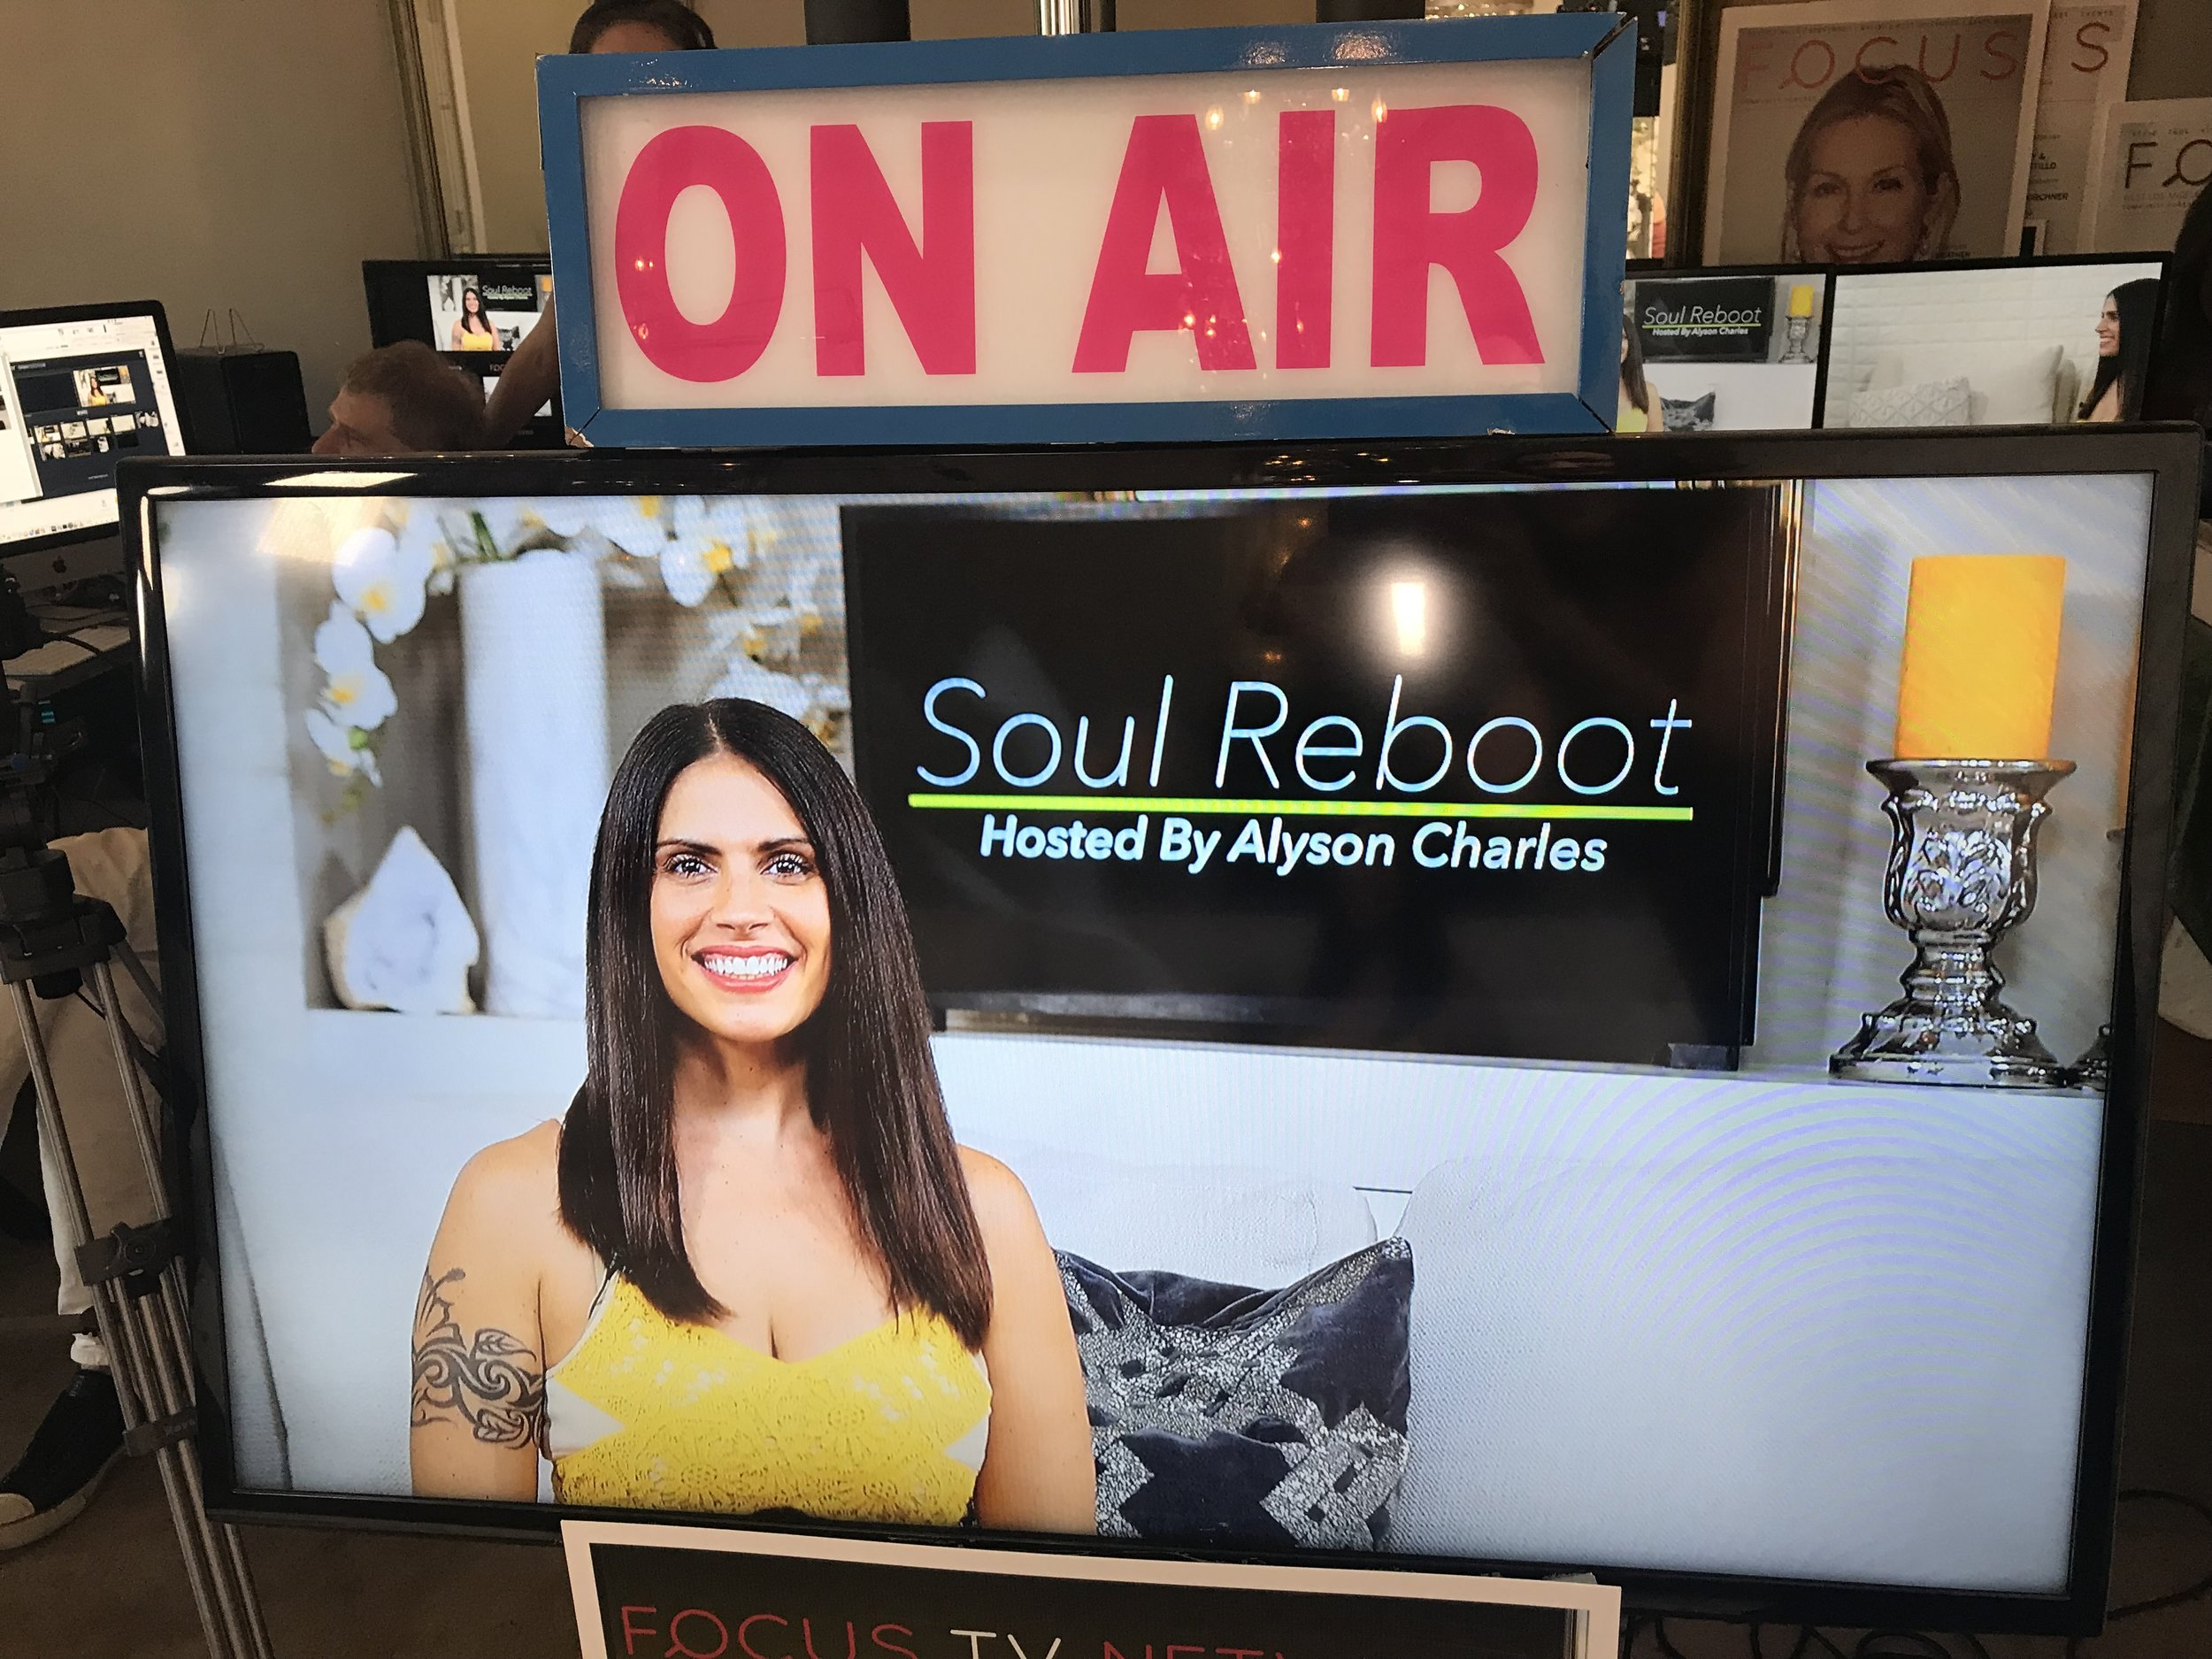 Soul Reboot with Alyson charles - This modern talk show explores wildly powerful defining moments experienced by some of the most epic beings on the planet! Are there better ways to reach your goals? Top ways to align with your purpose on Earth and clear the pathway between you and your dreams? It all happens here on Soul Reboot.